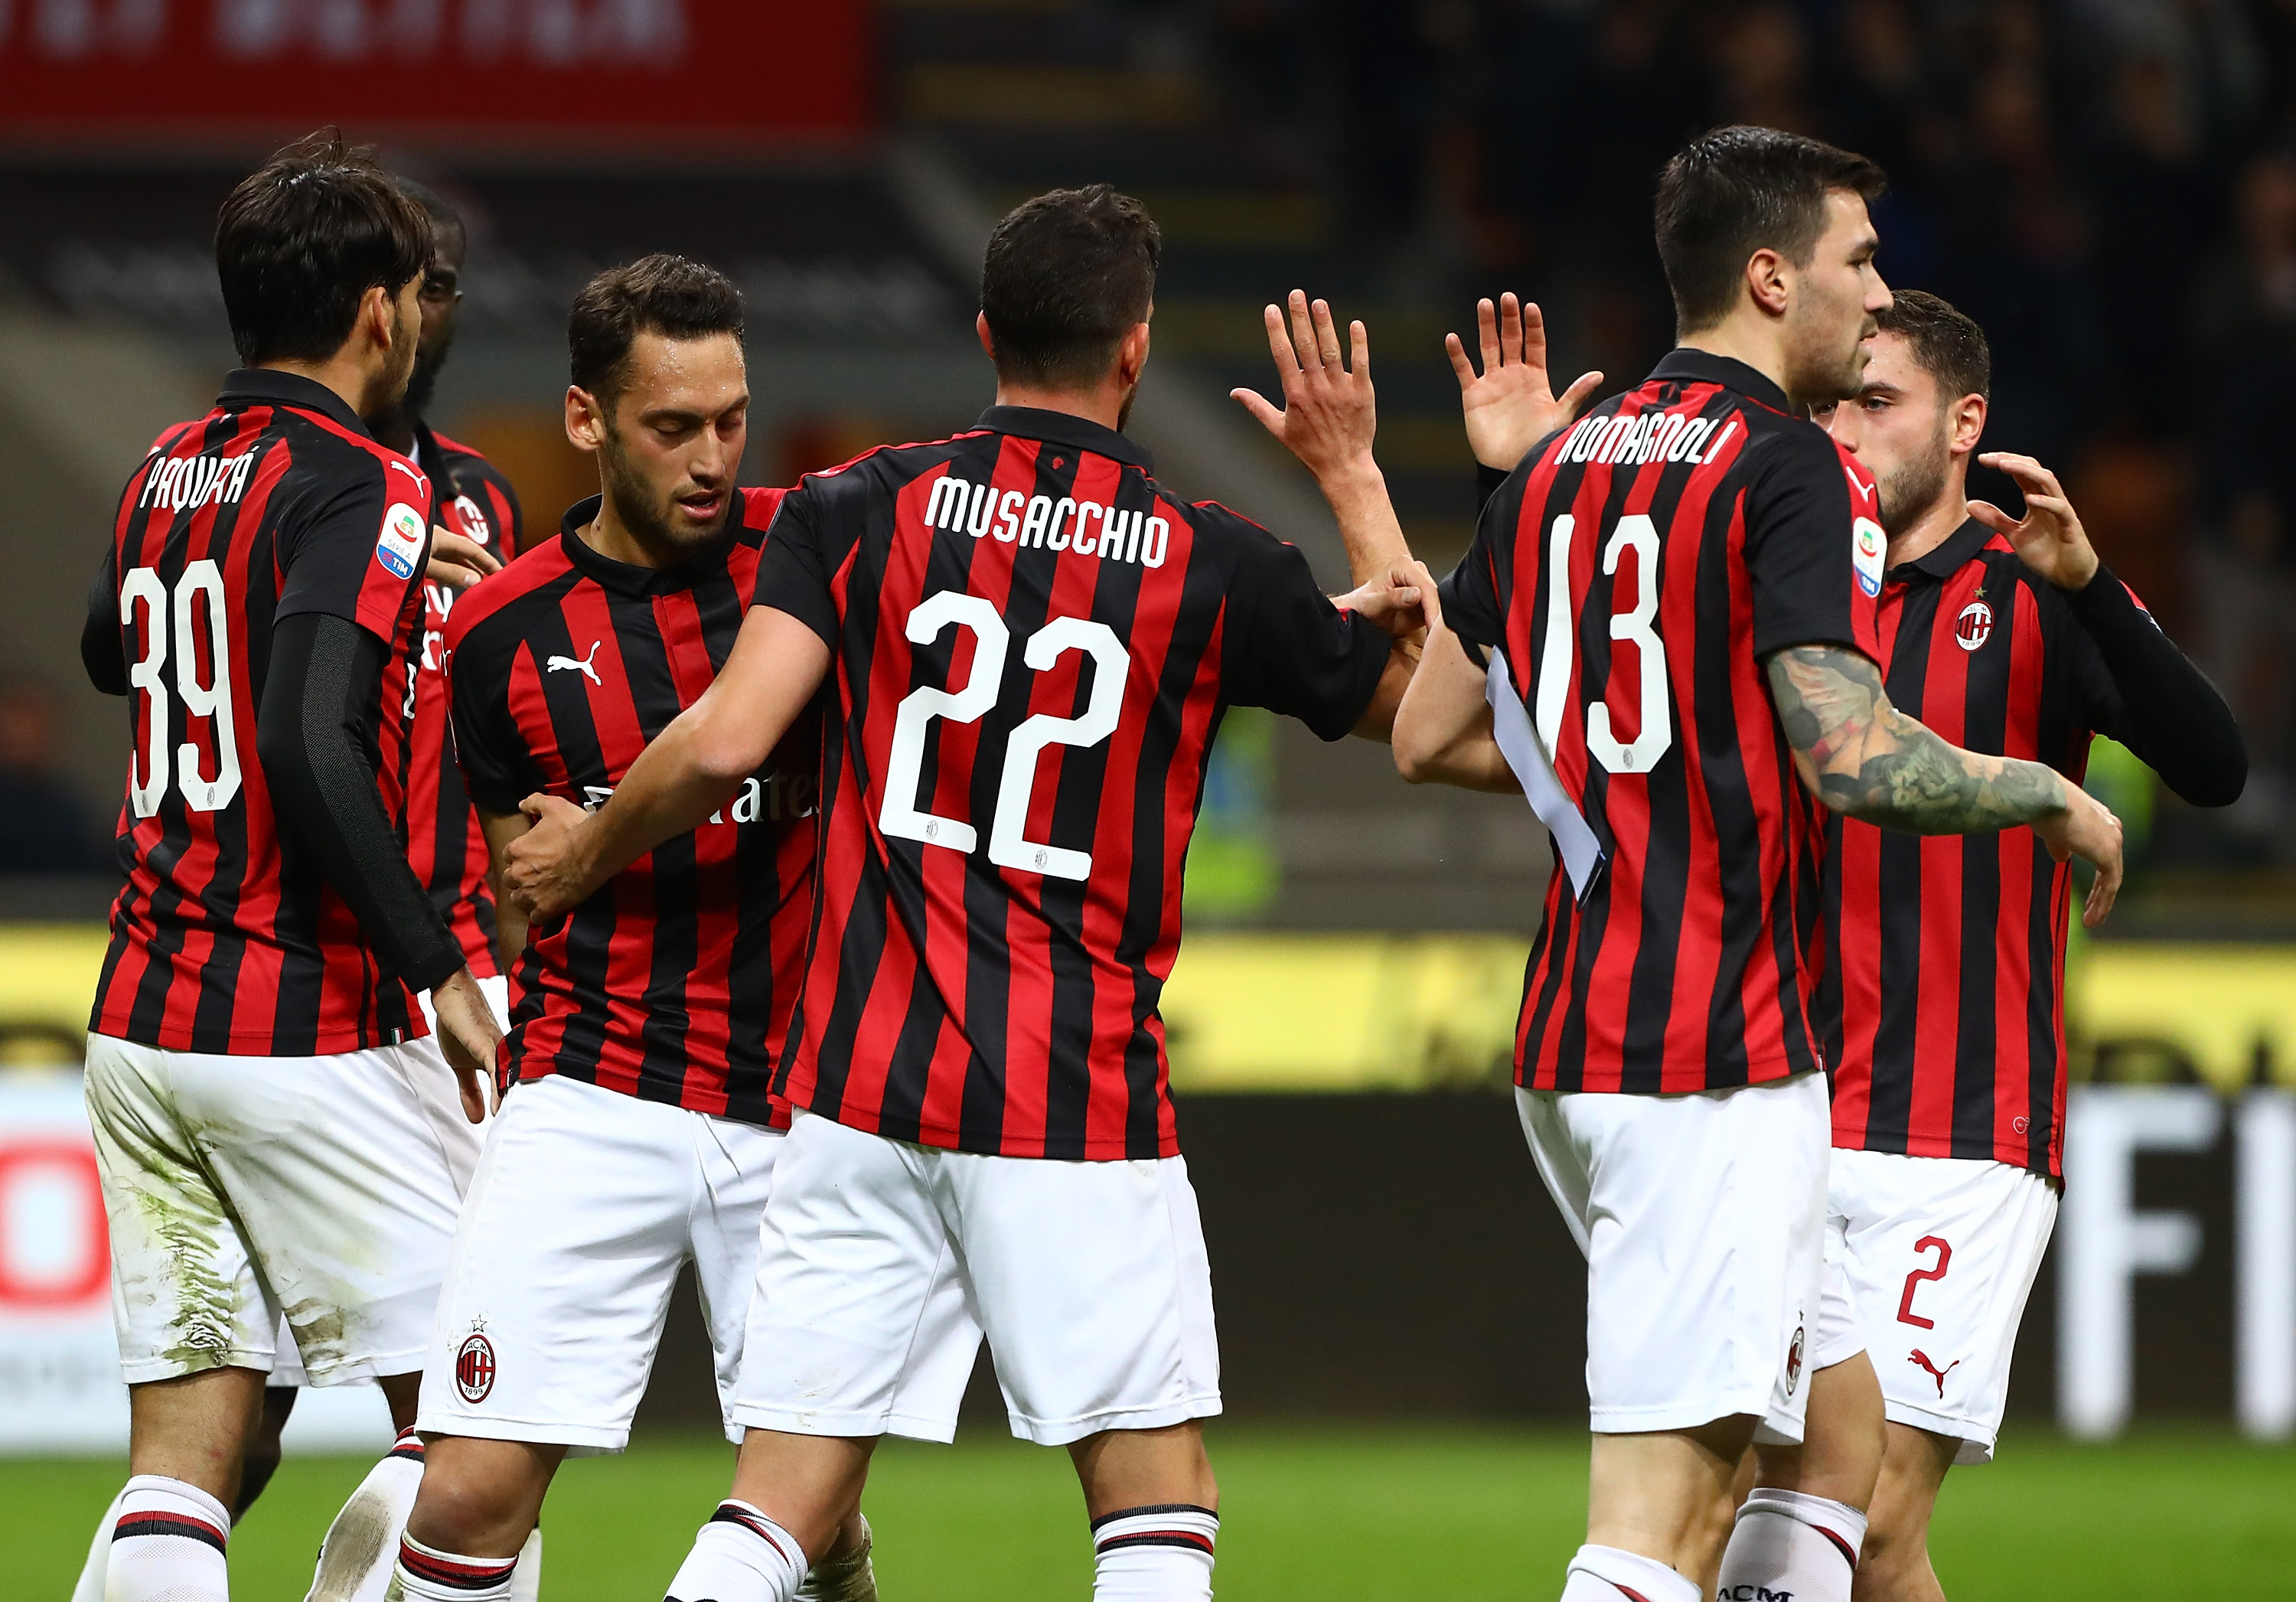 AC Milan 1-0 Sassuolo: The Rossoneri leap to third place ...